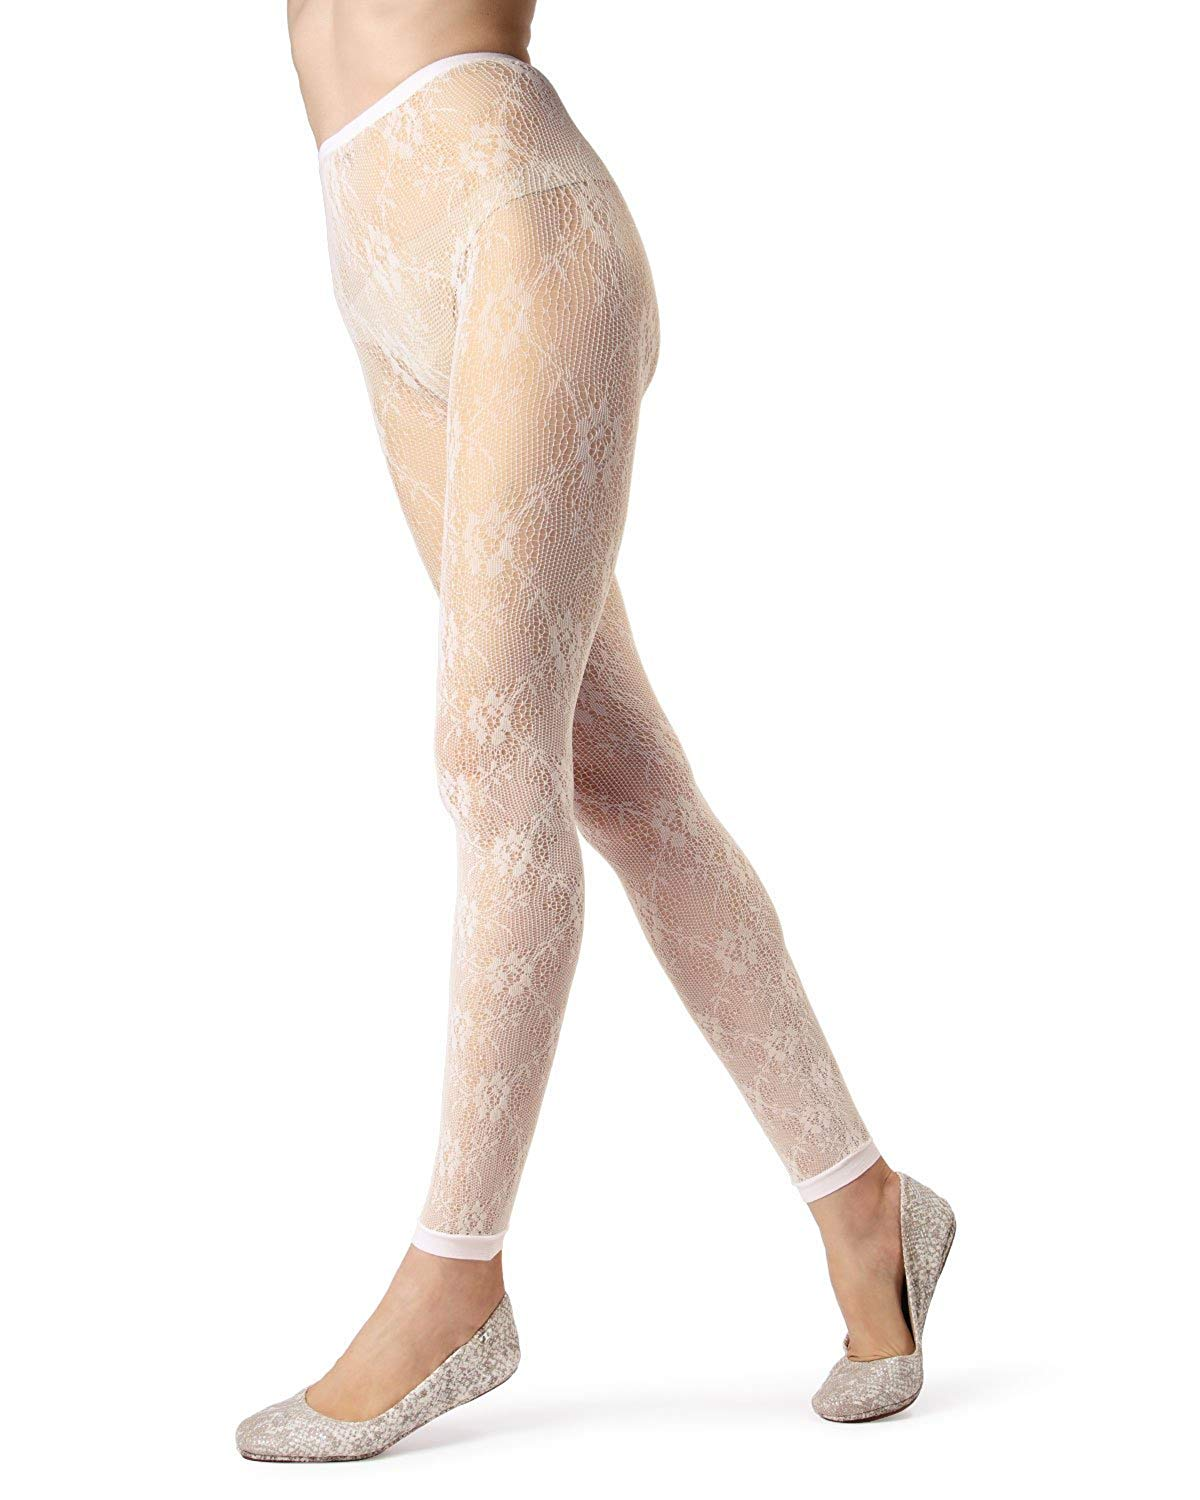 67cc8f417f4 Get Quotations · MeMoi Romantic Lace Footless Tights | MeMoi Tights -  Hosiery - Pantyhose